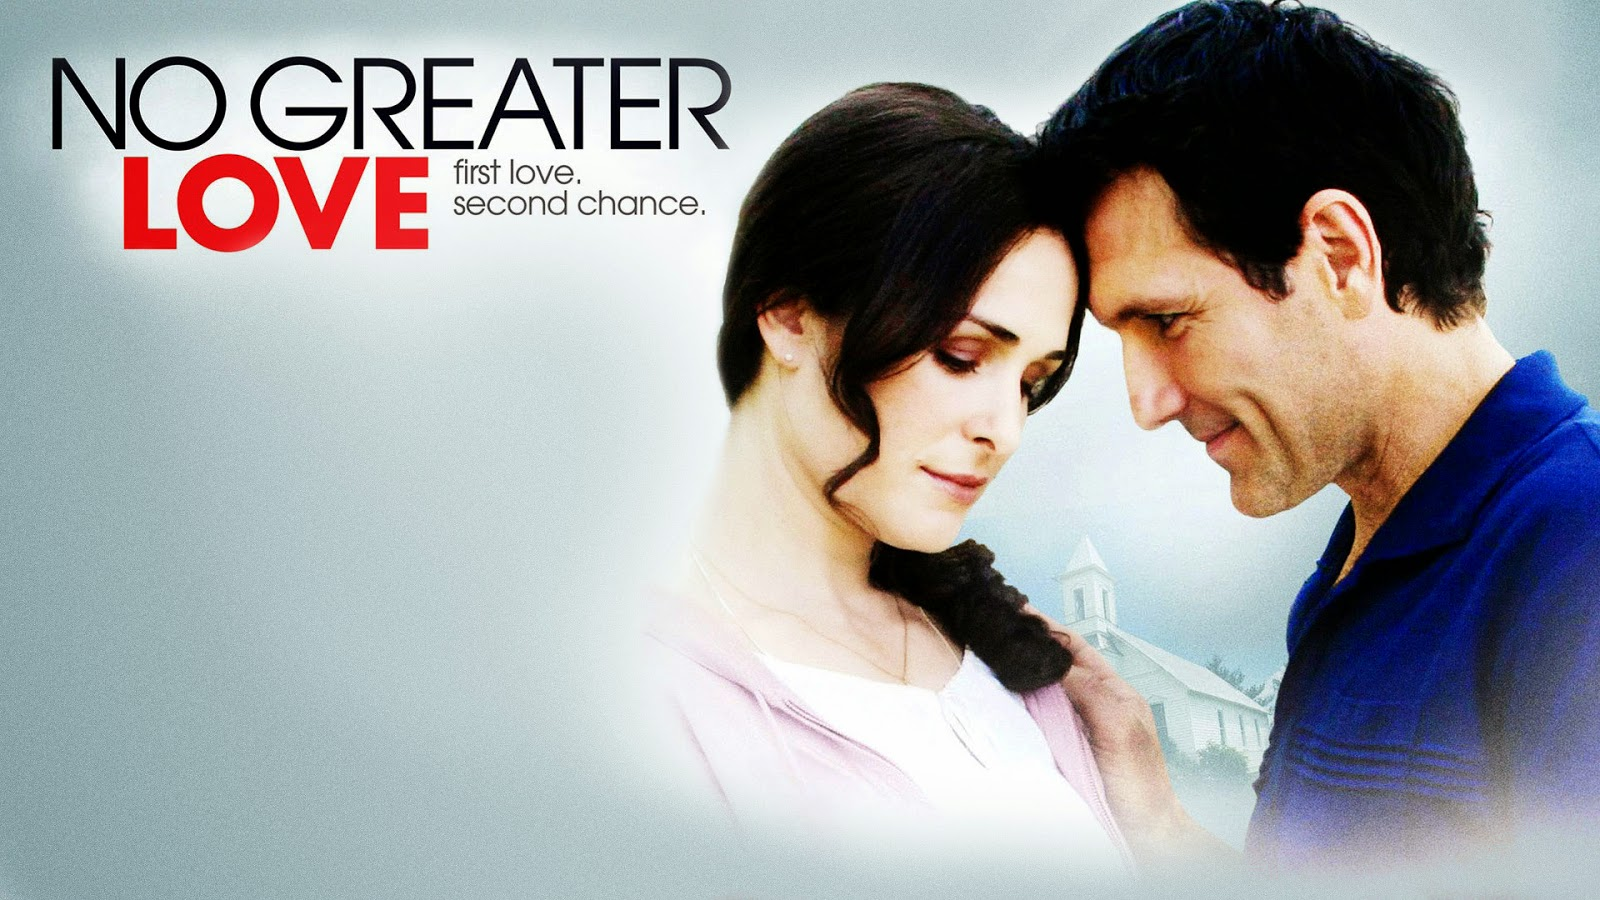 No Greater Love(2010)